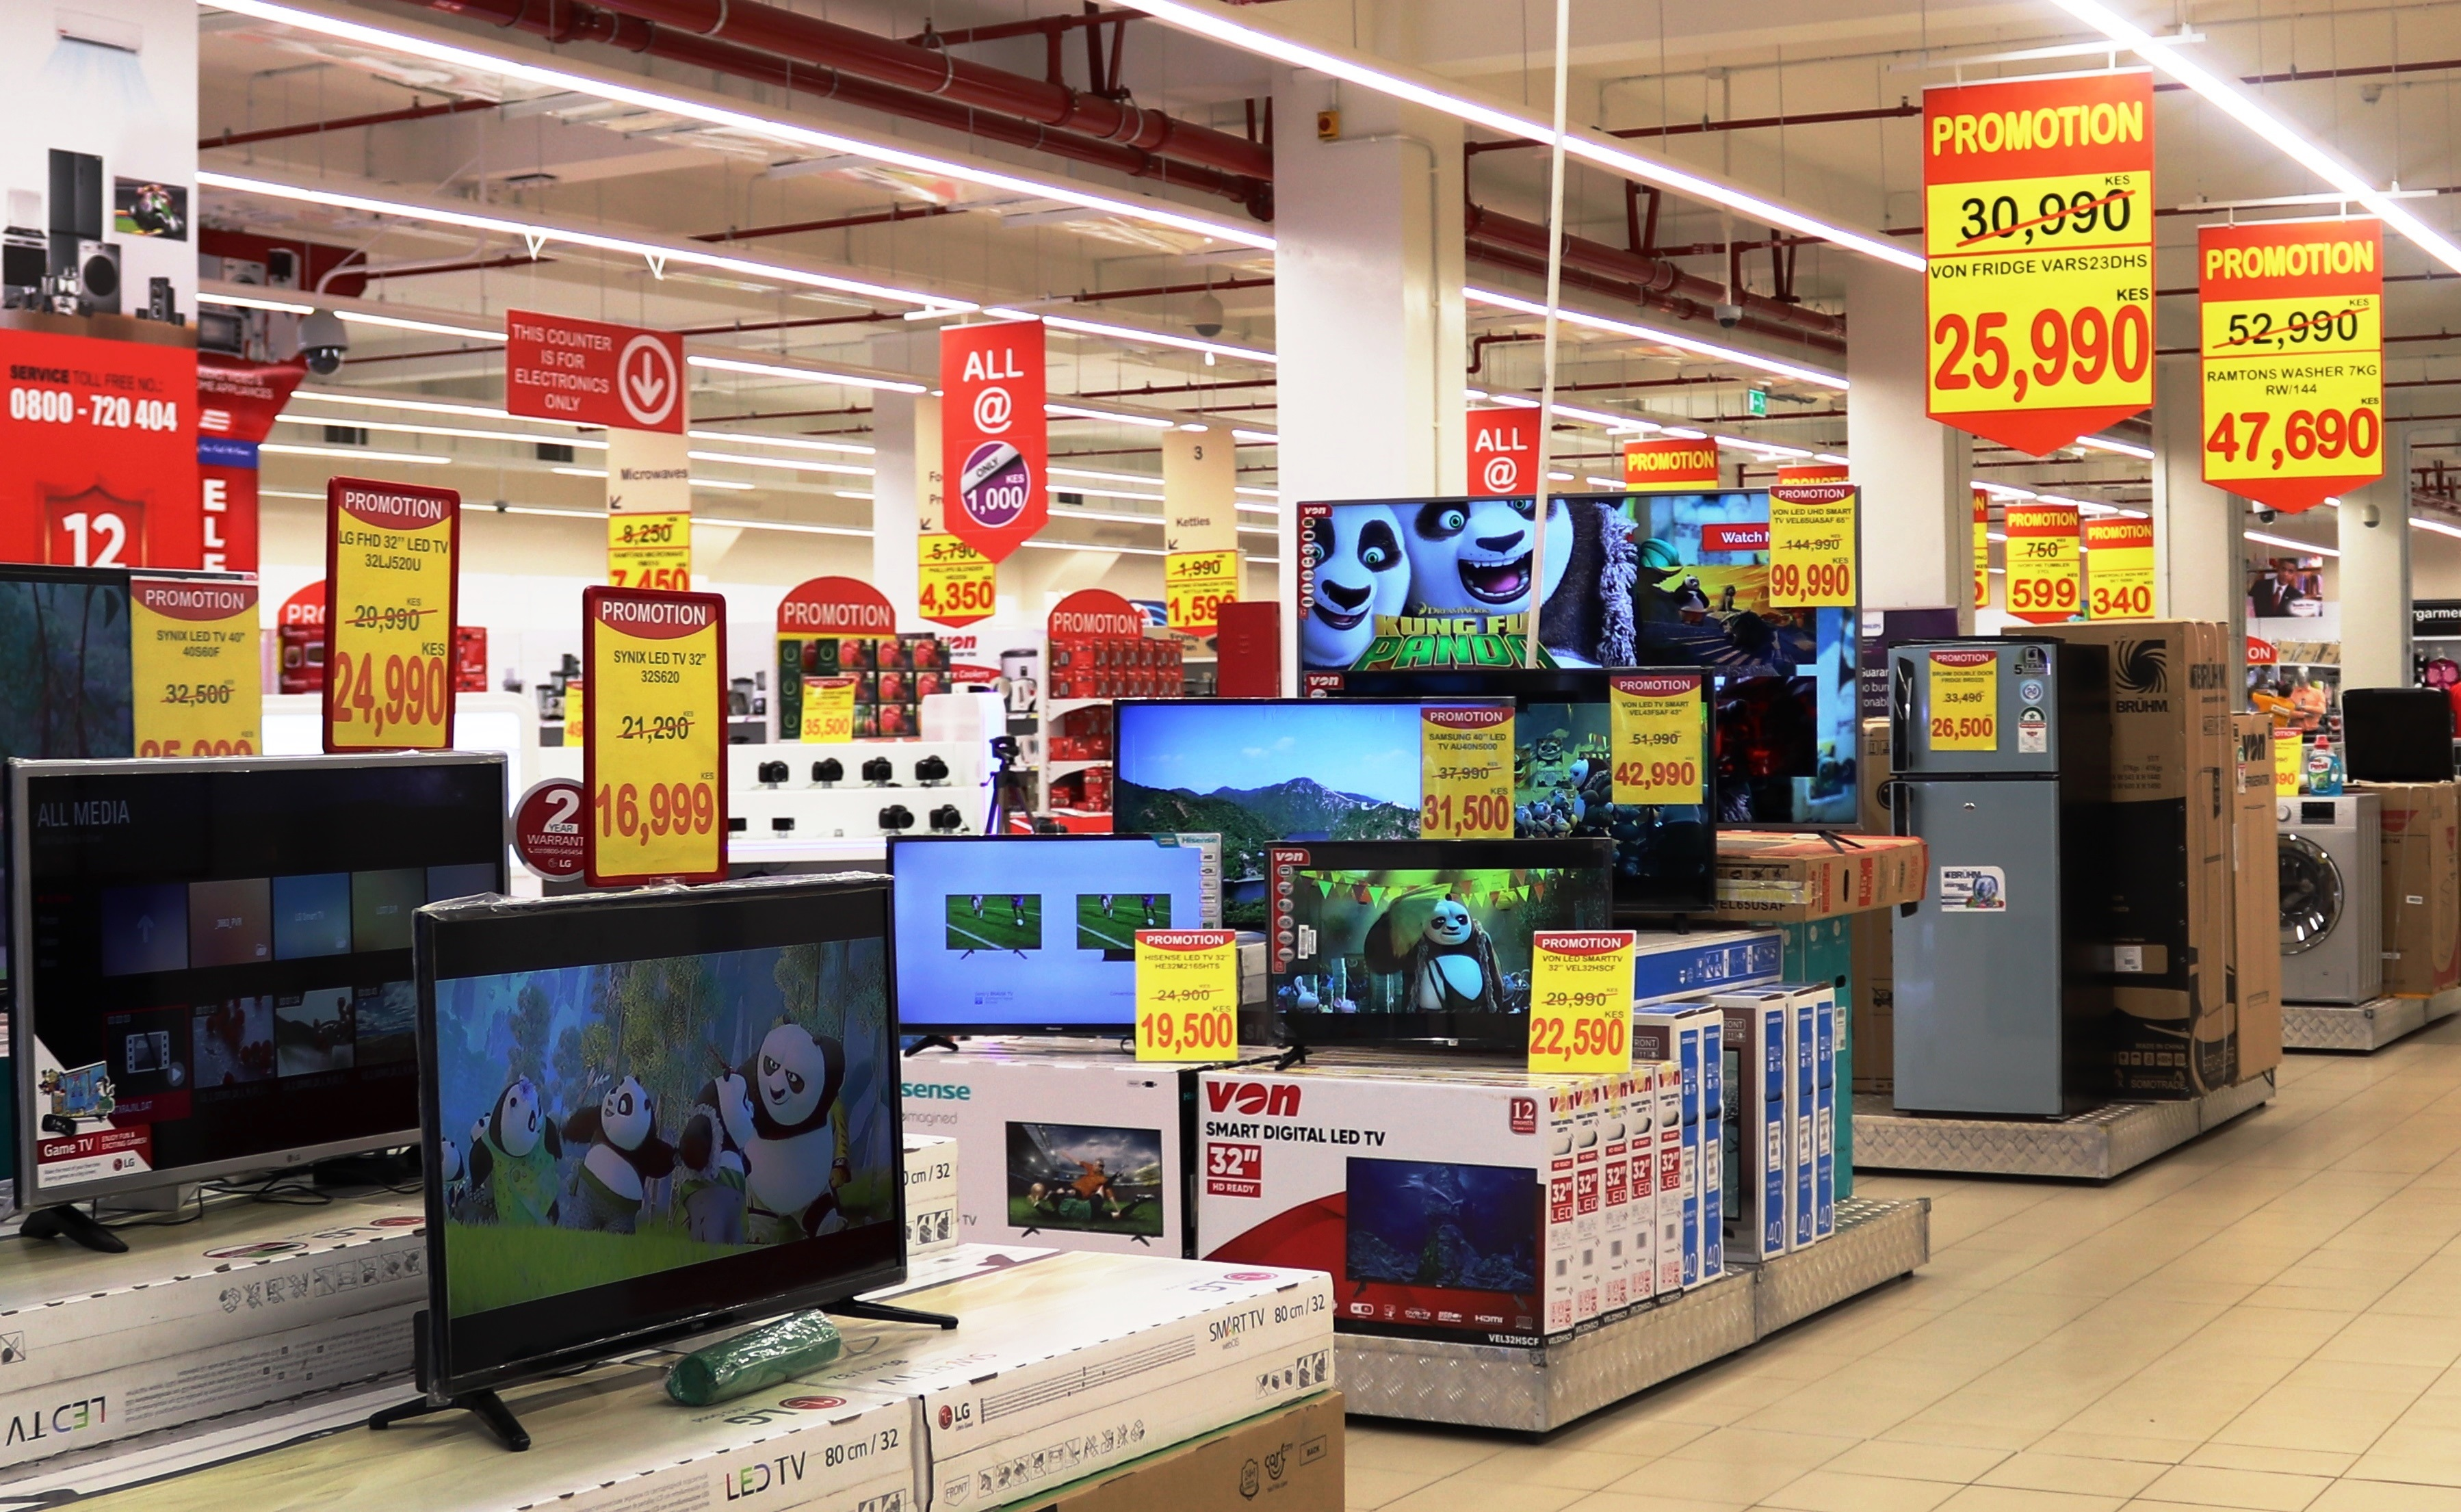 MAJID AL FUTTAIM TO OPEN ITS FIRST CARREFOUR STORES IN